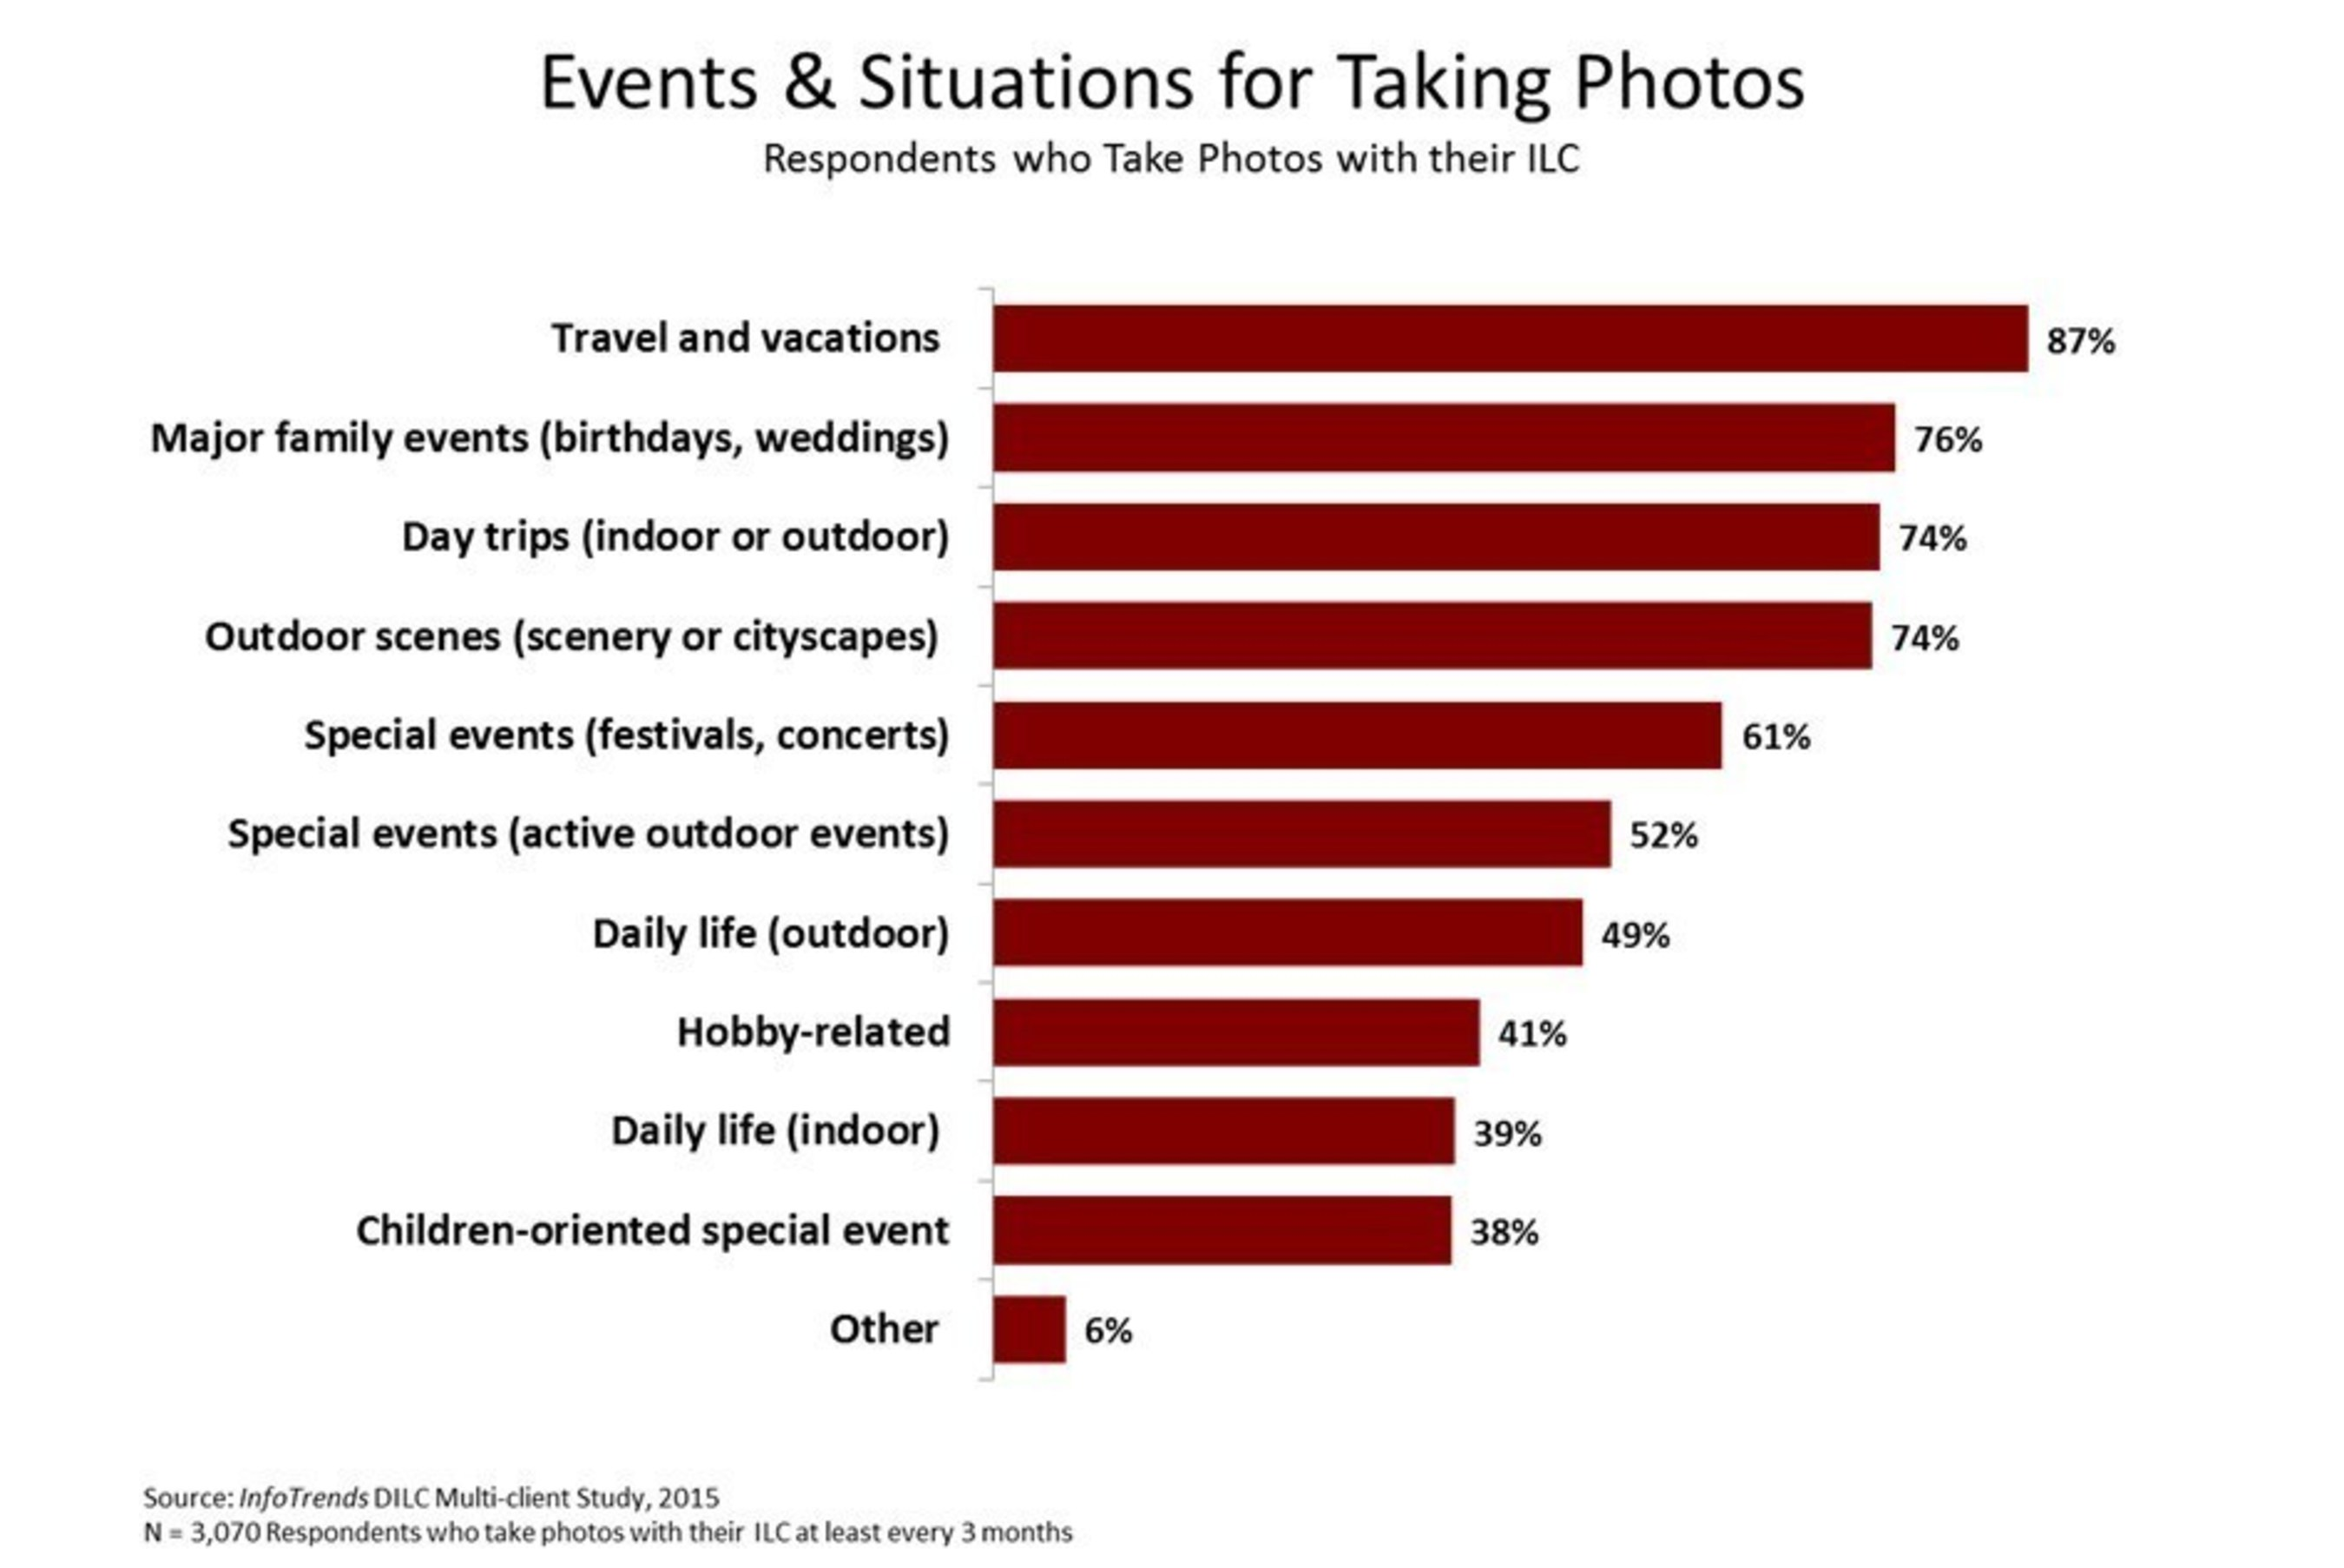 Events & Situations for Taking Photos